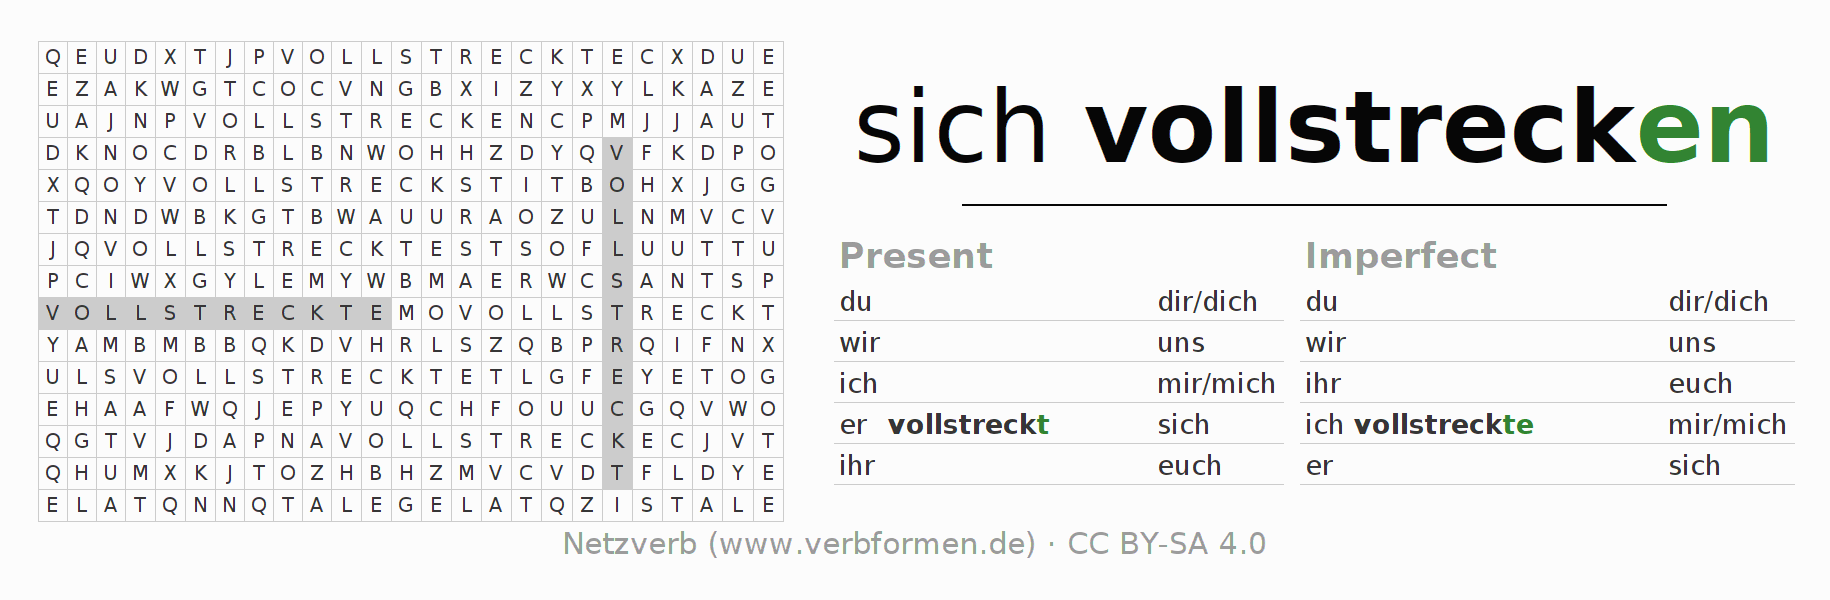 Word search puzzle for the conjugation of the verb sich vollstrecken